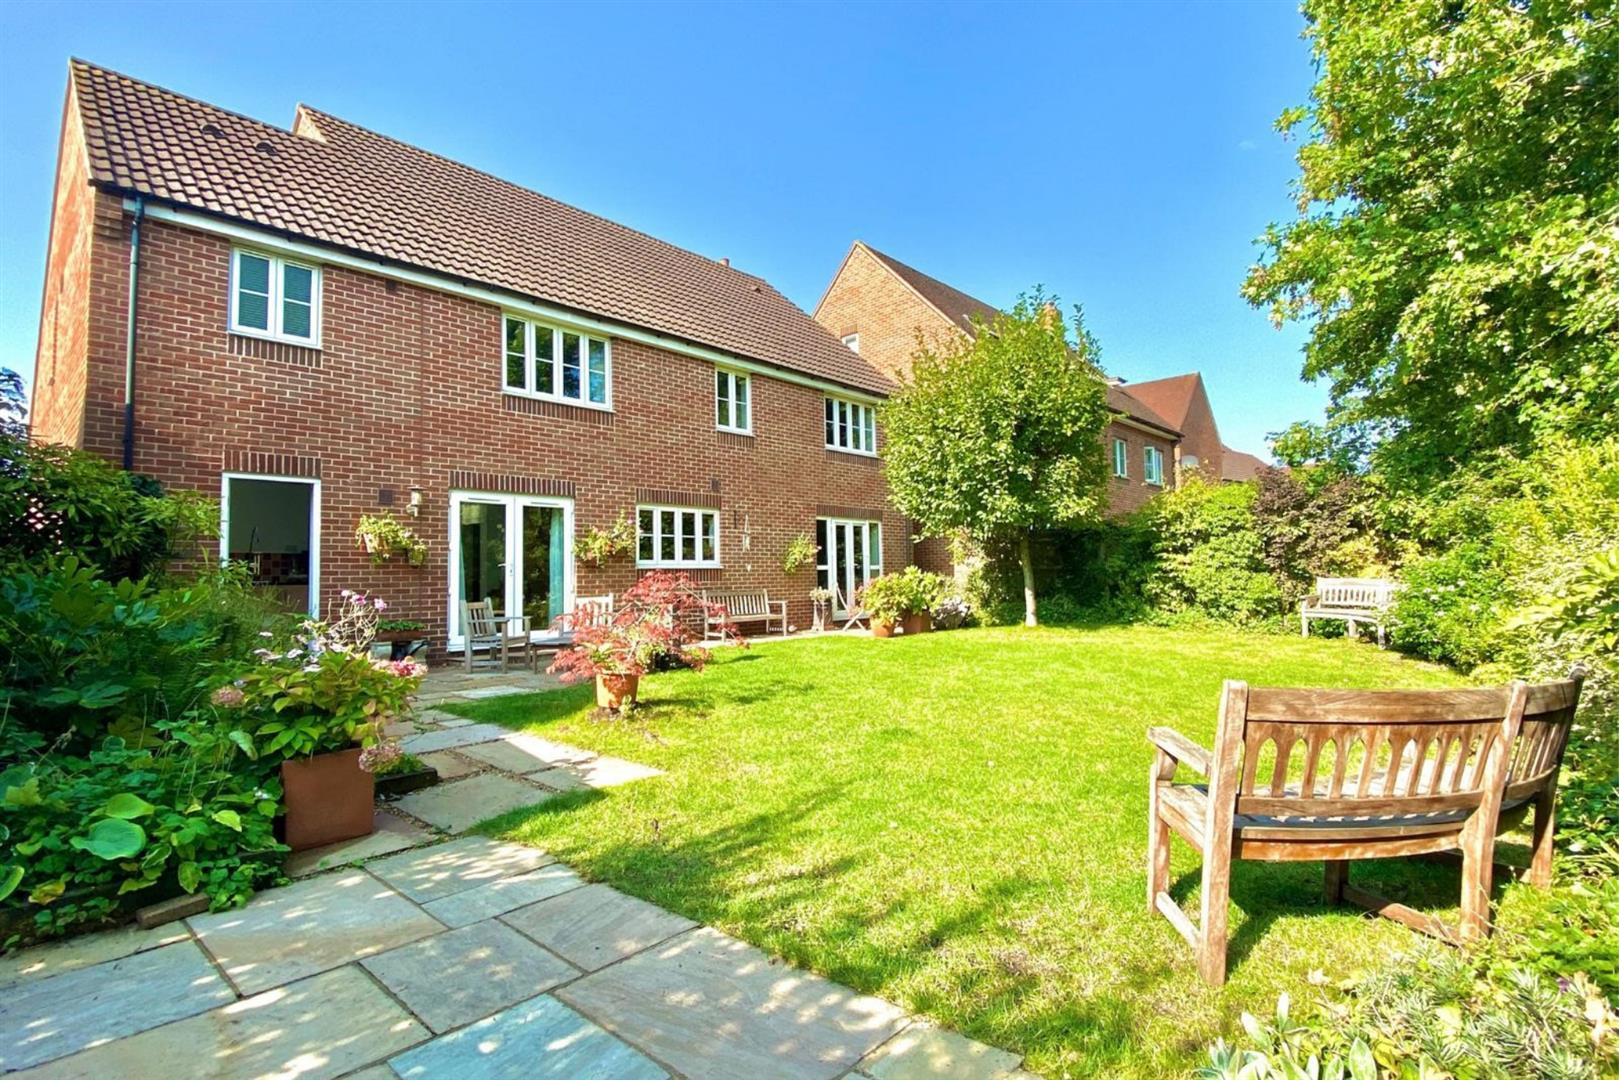 5 bed detached for sale in Shinfield 2